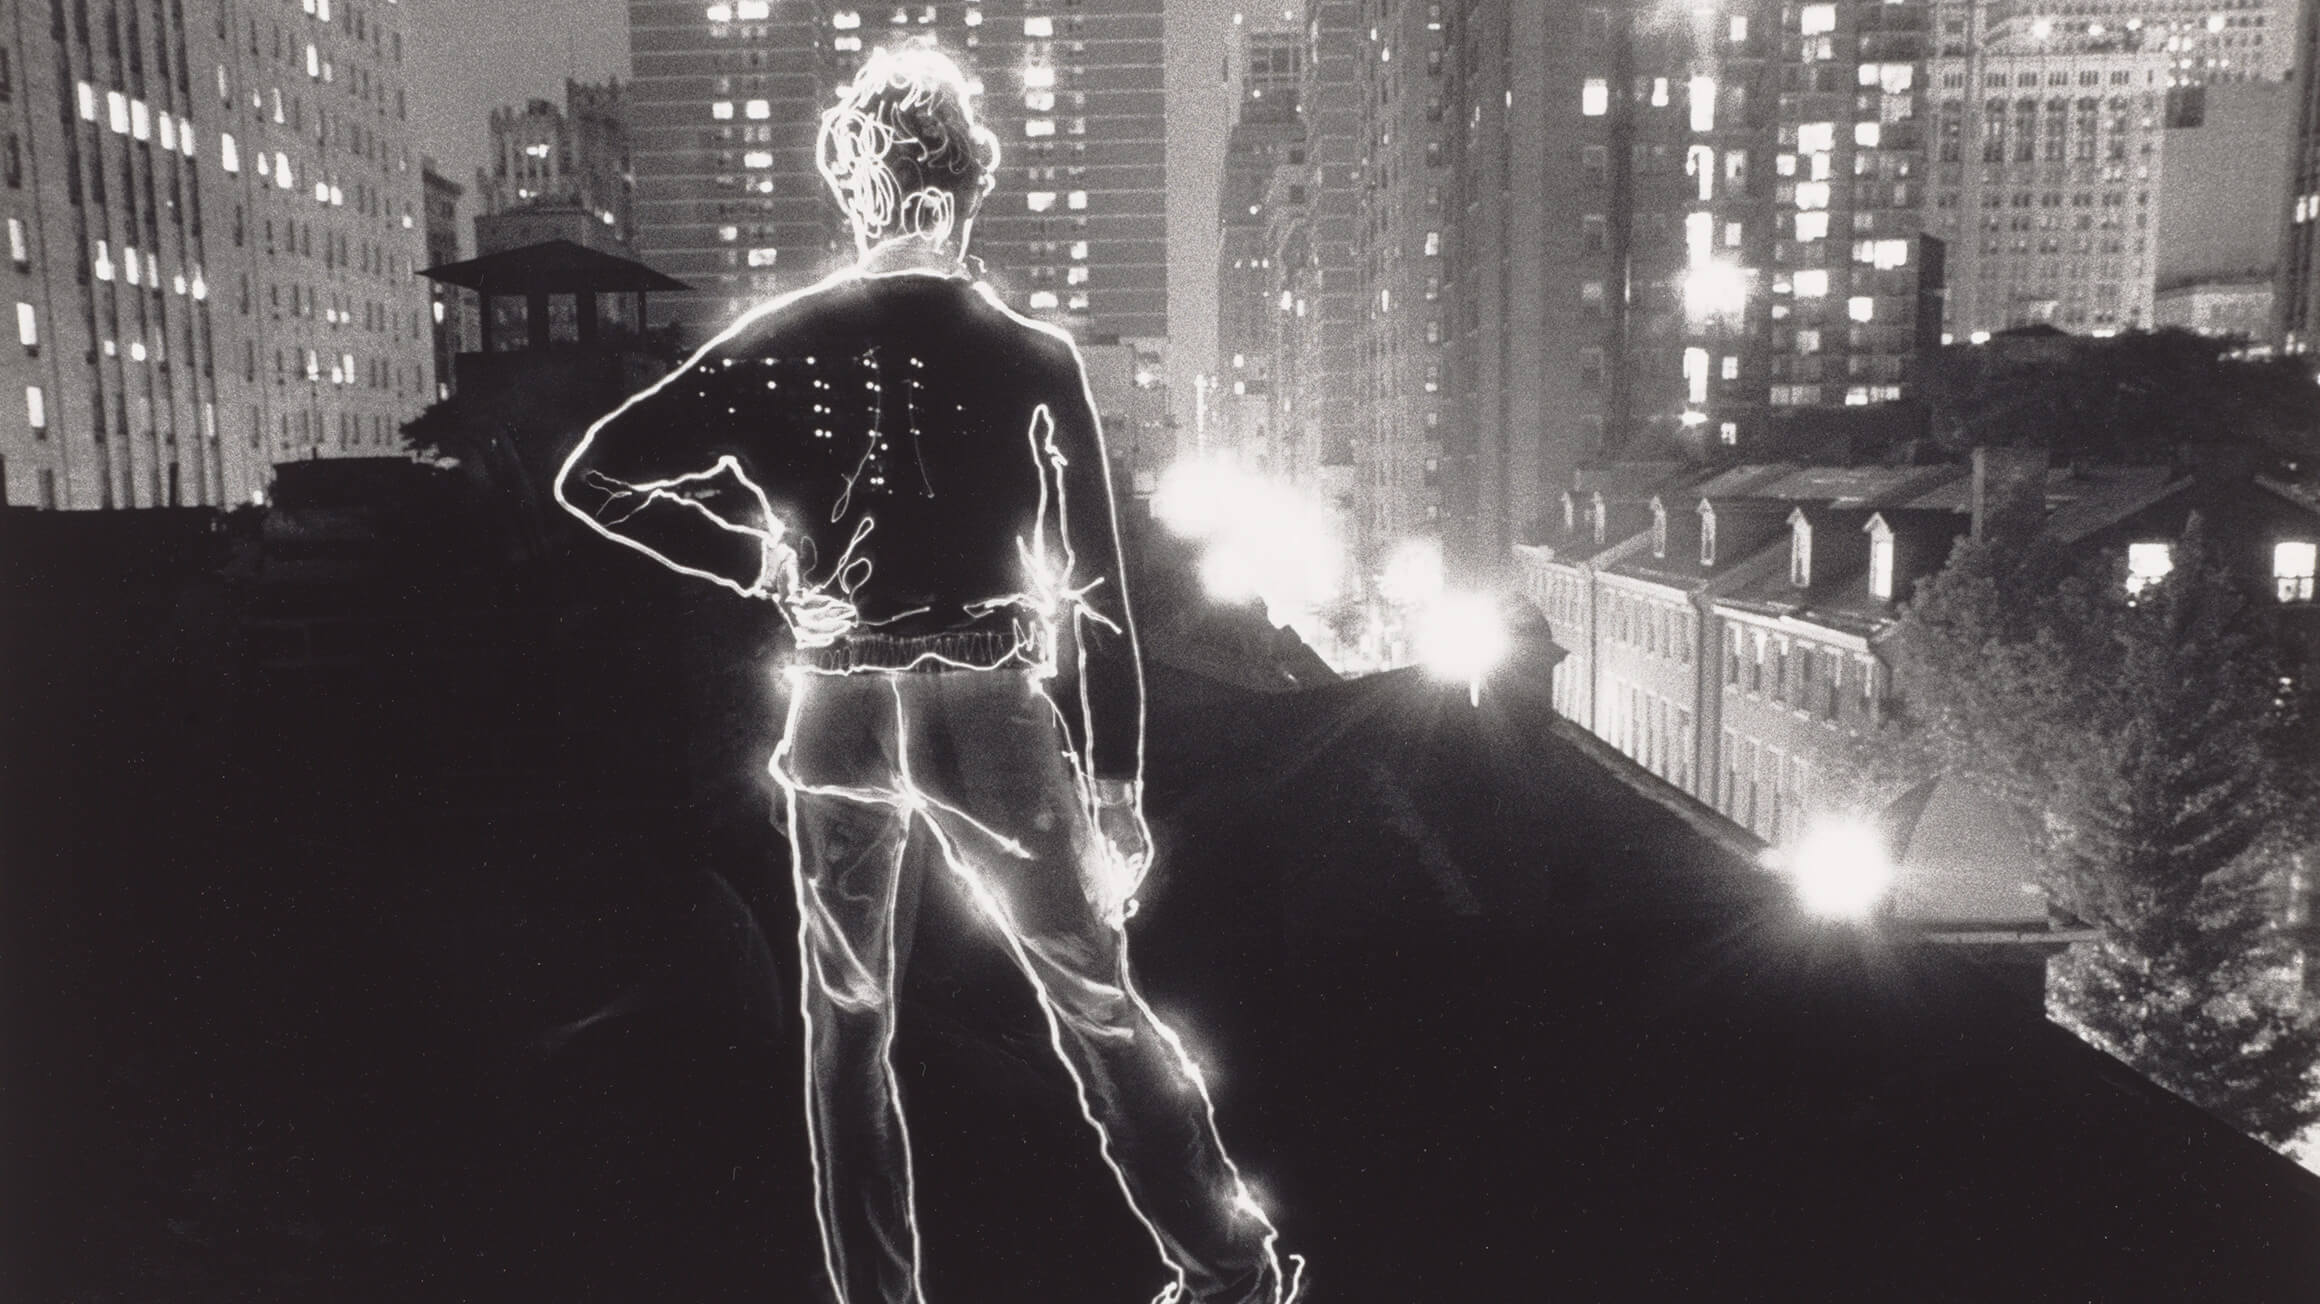 Angelo on the Roof (detail), 1979 (negative), 1995 (print), by David Lebe (American, born 1948), 2010-80-1. © David Lebe